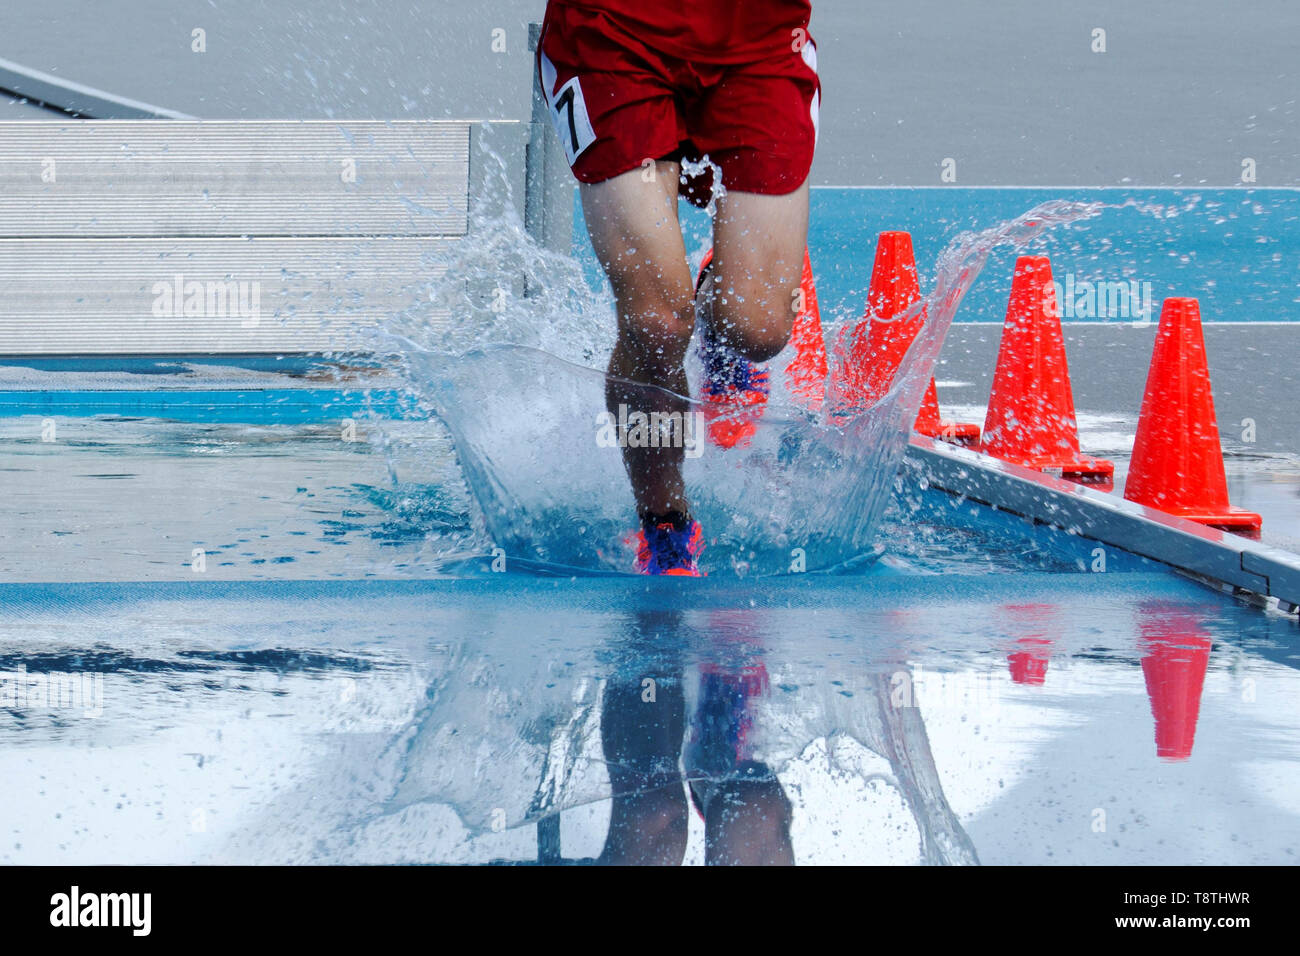 Landing and splashing in water while racing in the steeplechase Stock Photo